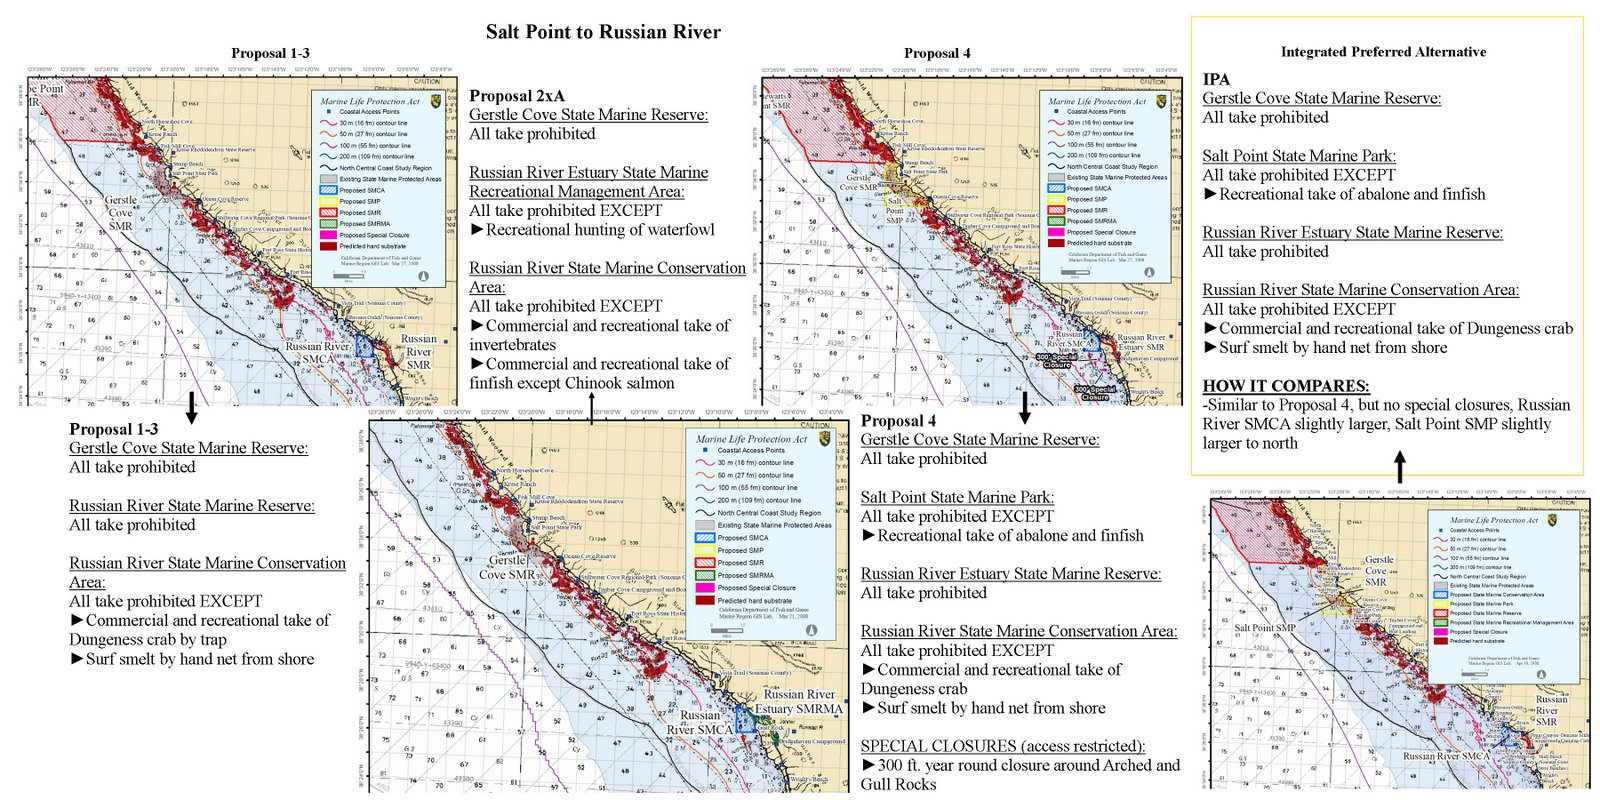 Salt Point to Russian River